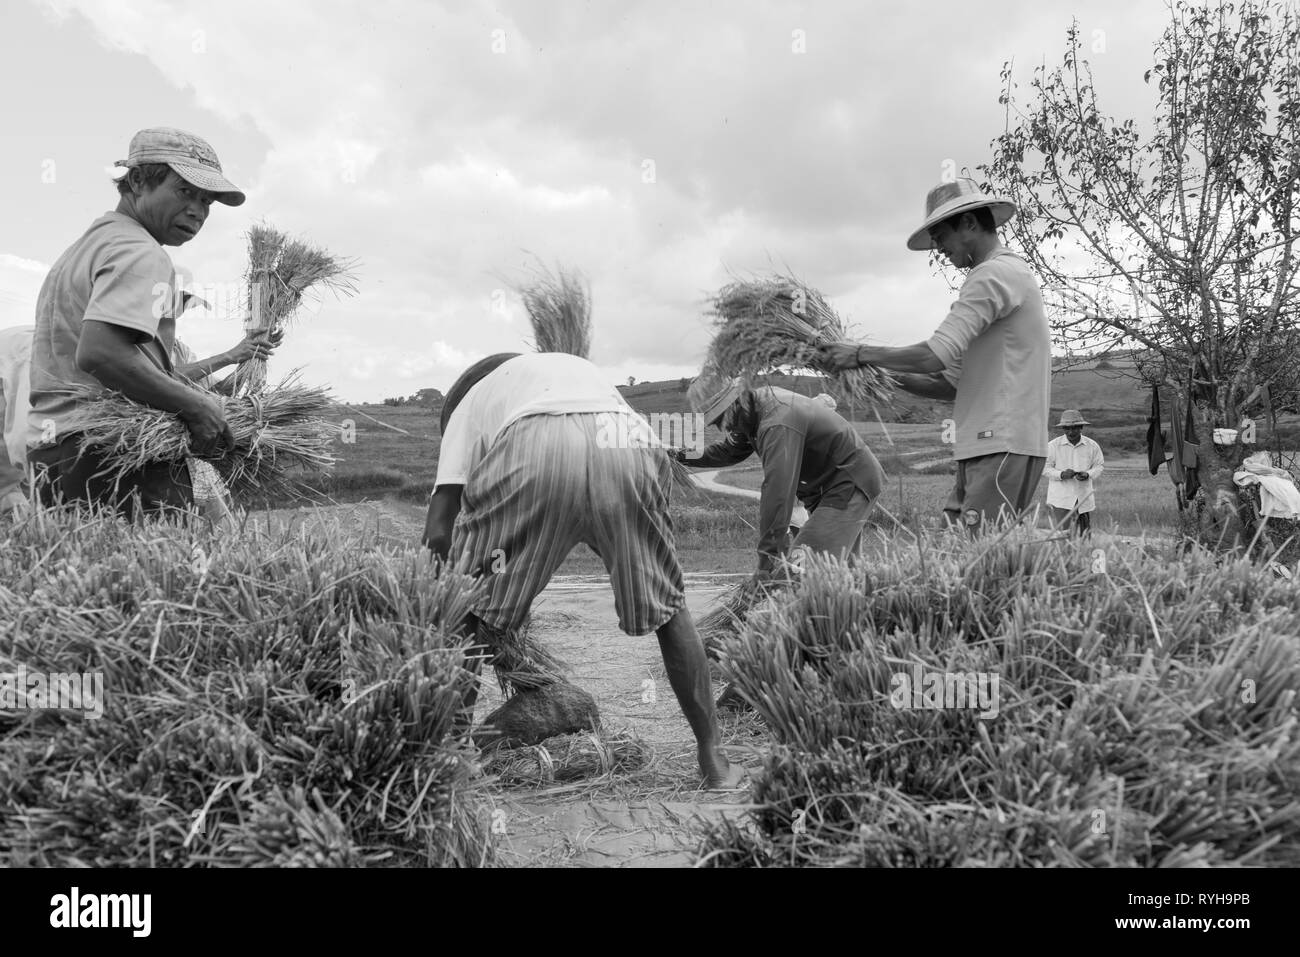 INLE LAKE, MYANMAR - 27 NOVEMBER, 2018: Black and white picture of local men tapping to collect rice in Inle Lake, Myanmar - Stock Image